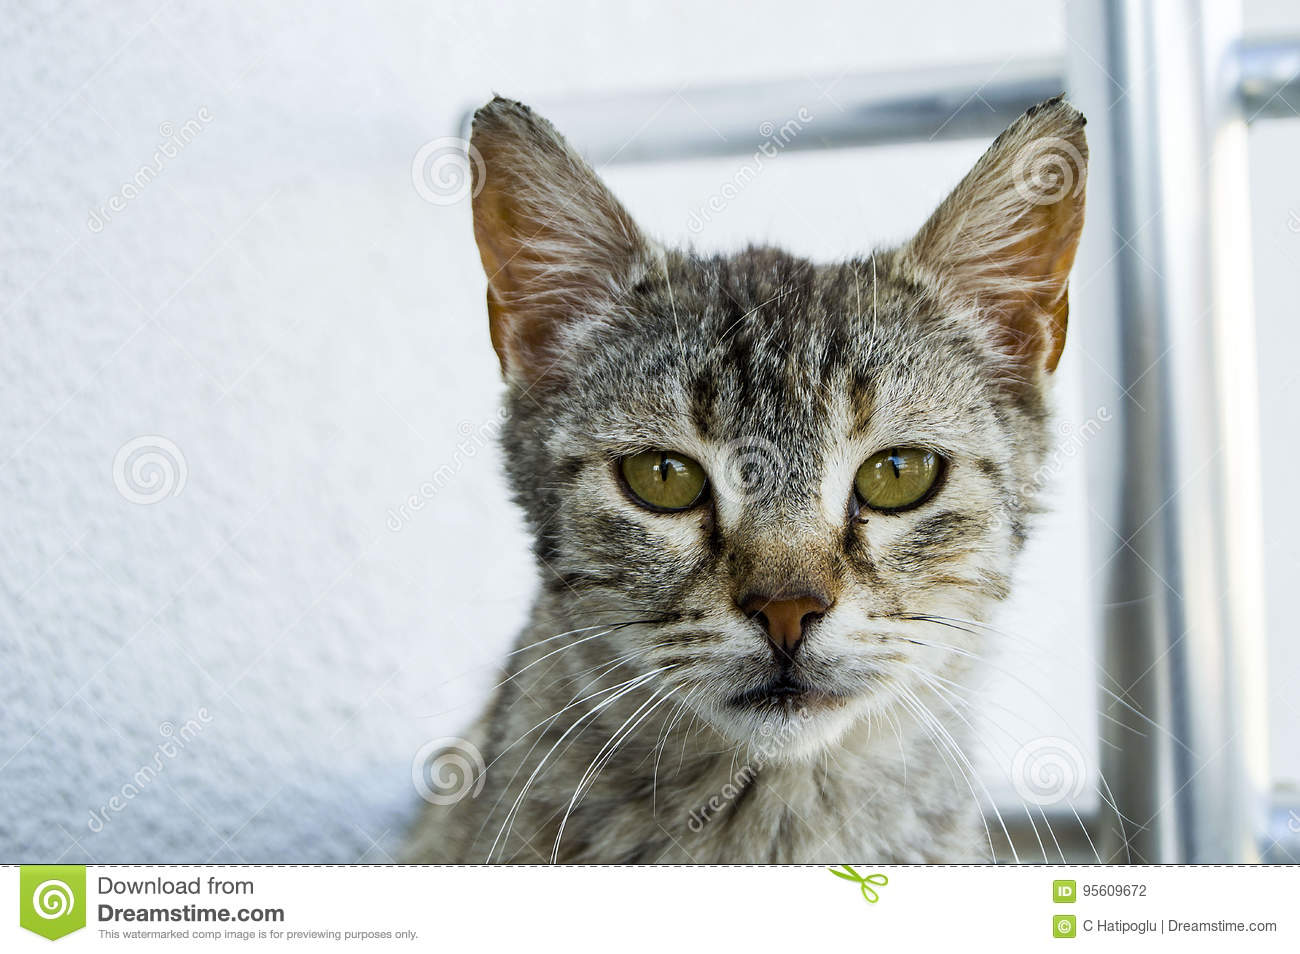 Cute cats, people loving and kissing the cat, the most beautiful big cat eyes,